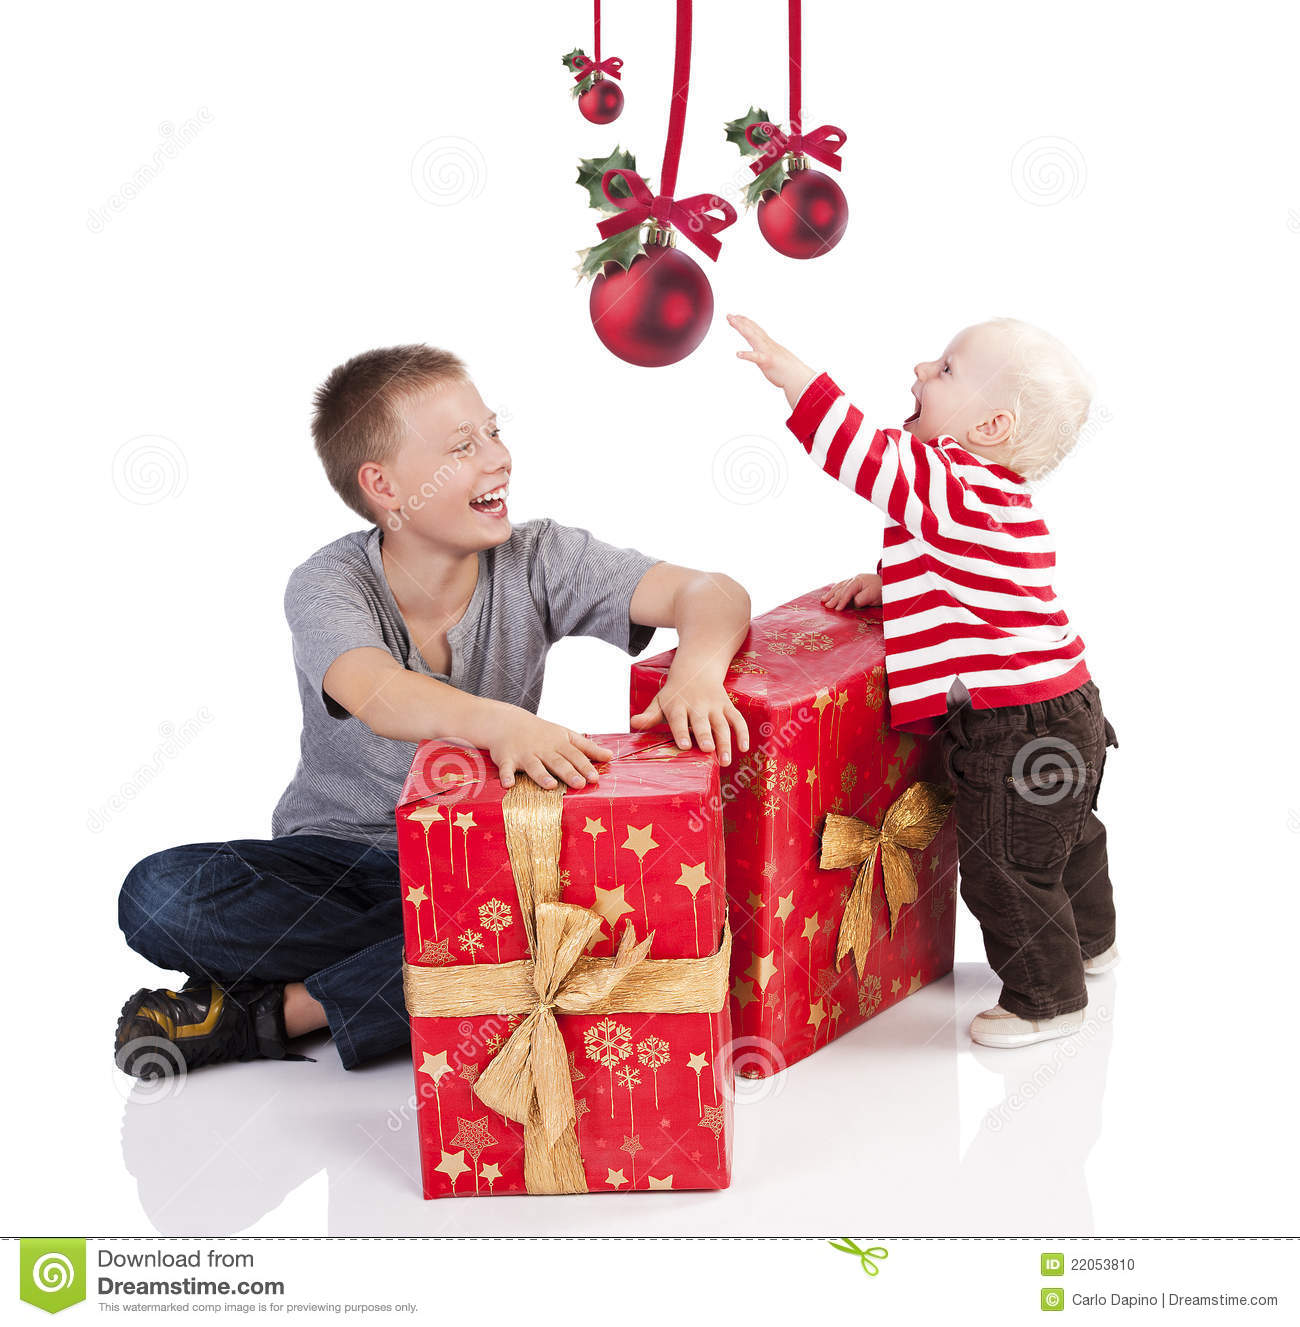 Baby Boy Gifts Christmas : Christmas baby boy with gift box brother stock photo